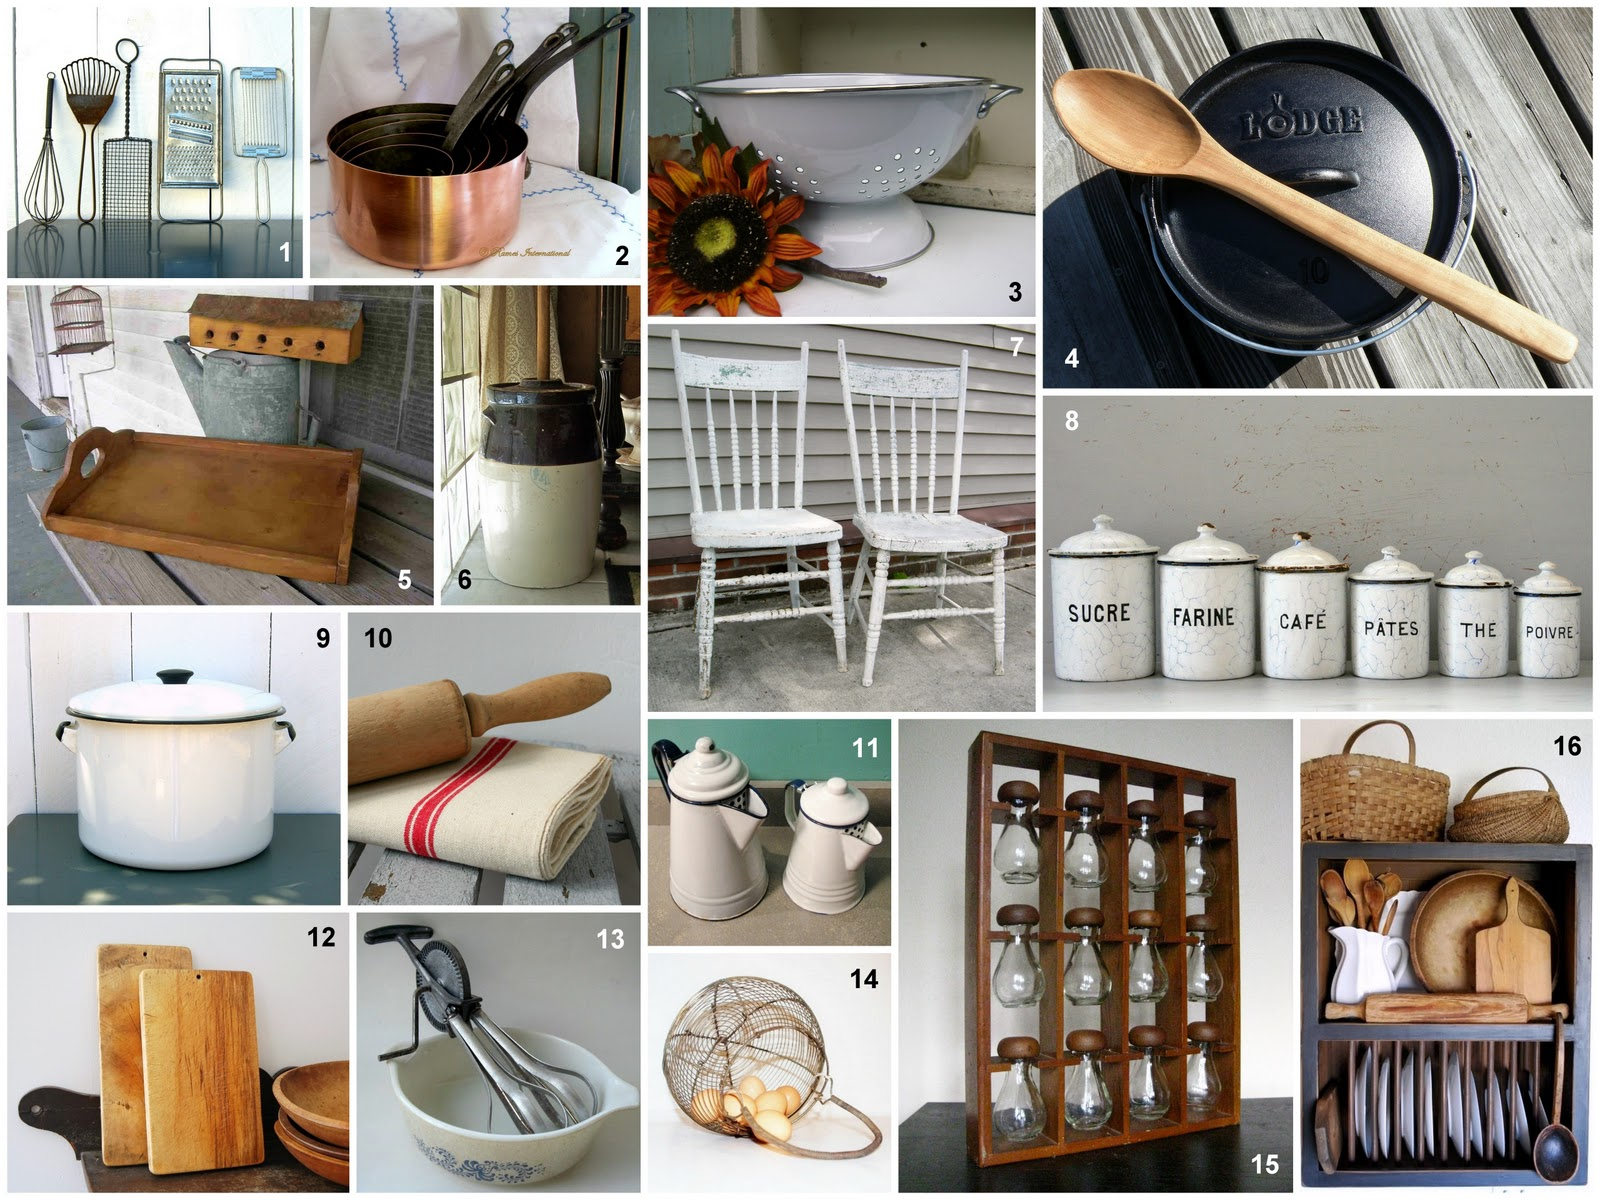 Village country kitchens a guest post by branda for Old farmhouse kitchen ideas